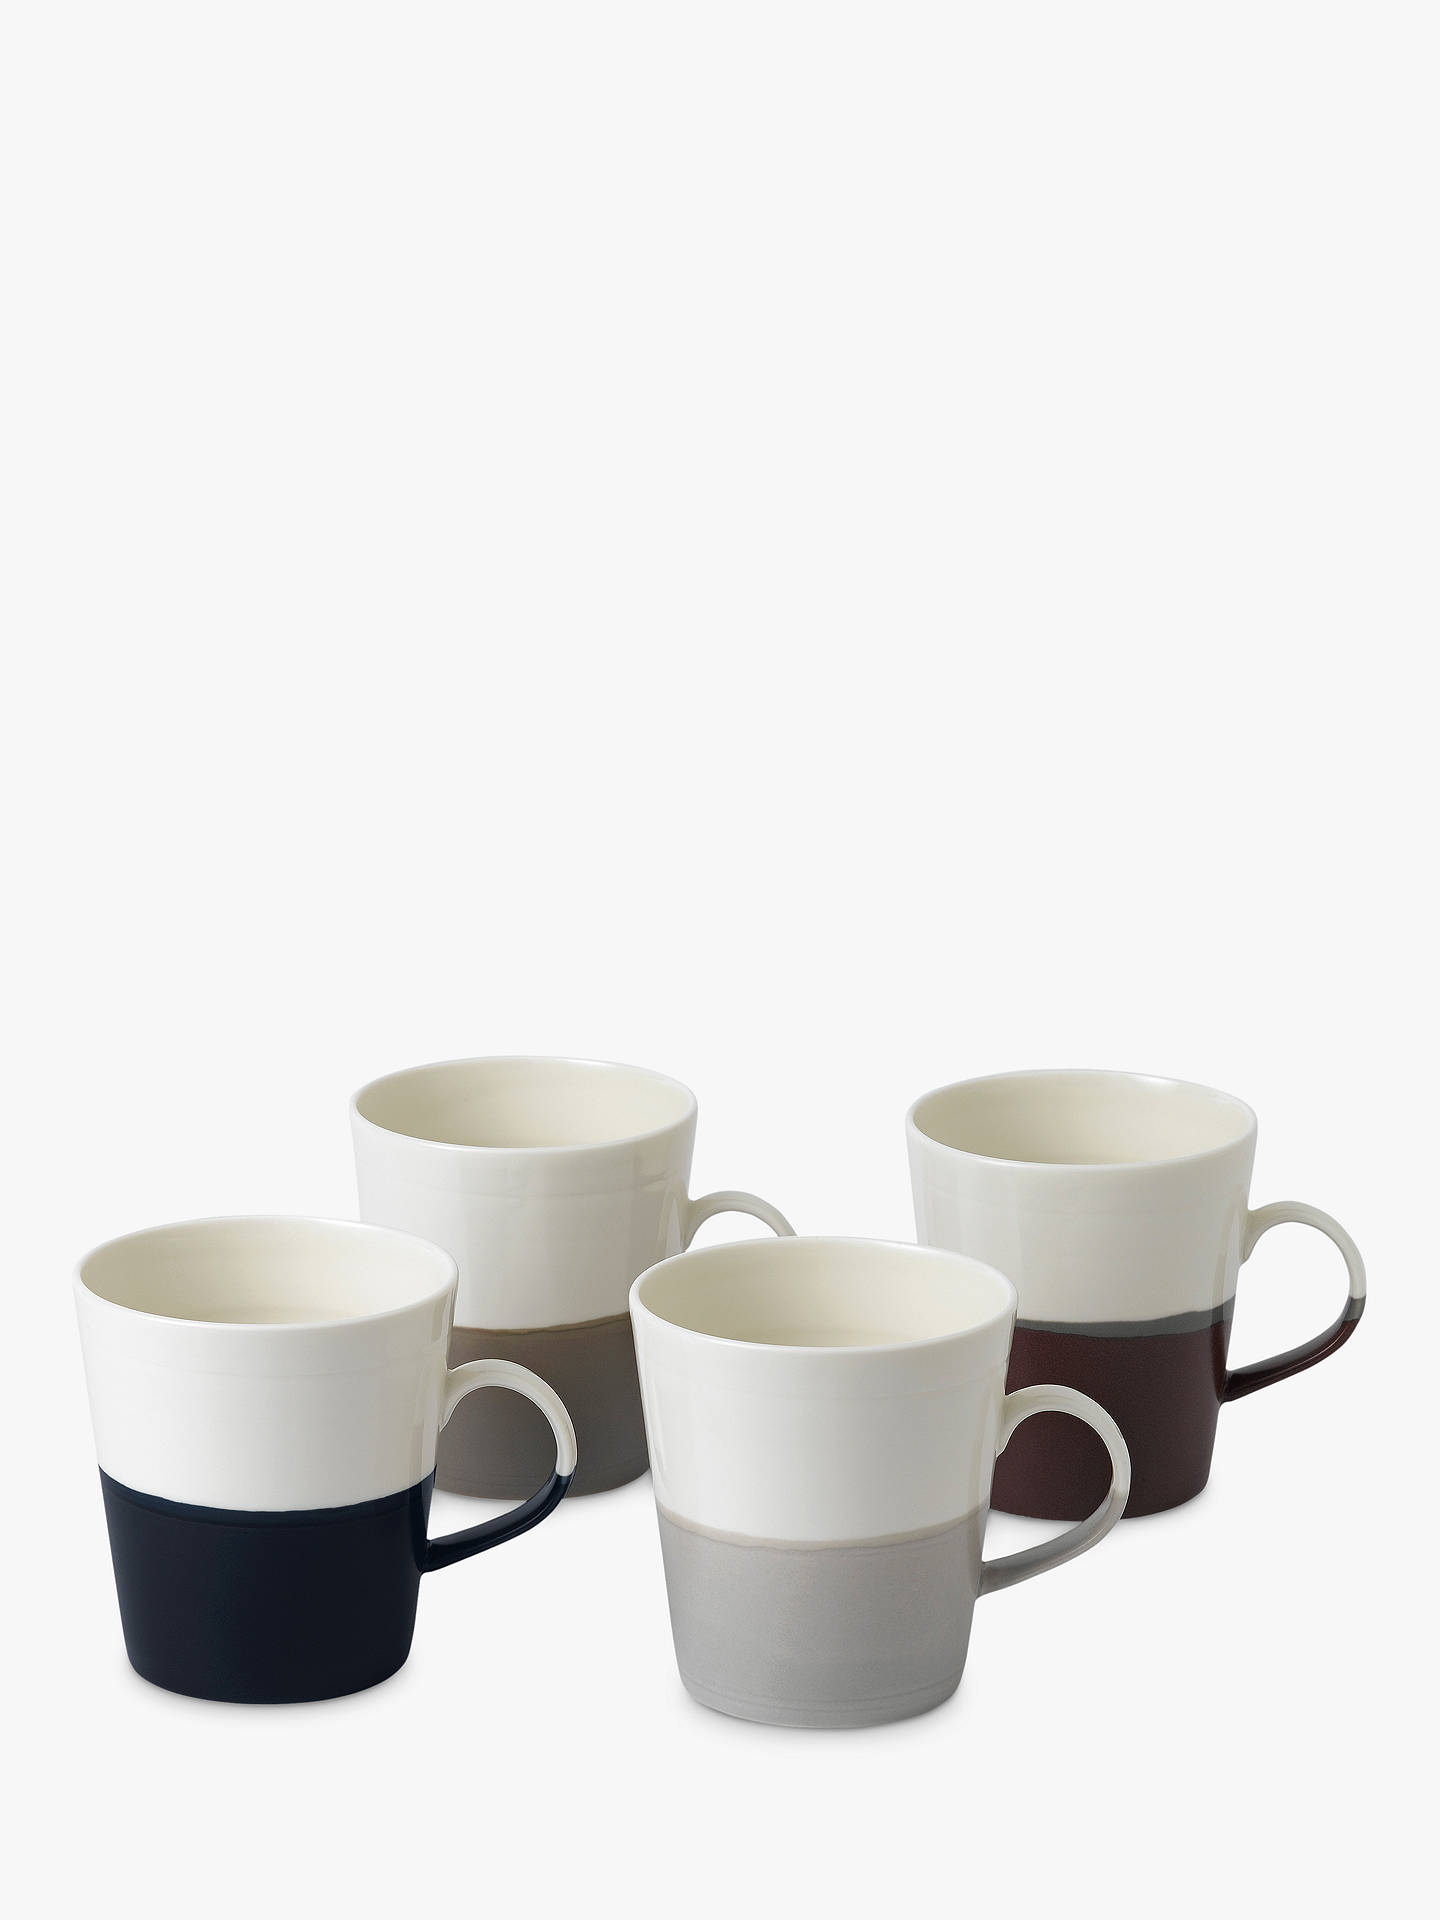 Buy Royal Doulton Coffee Studio Grande Mugs, White/Multi, 500ml, Set of 4 Online at johnlewis.com